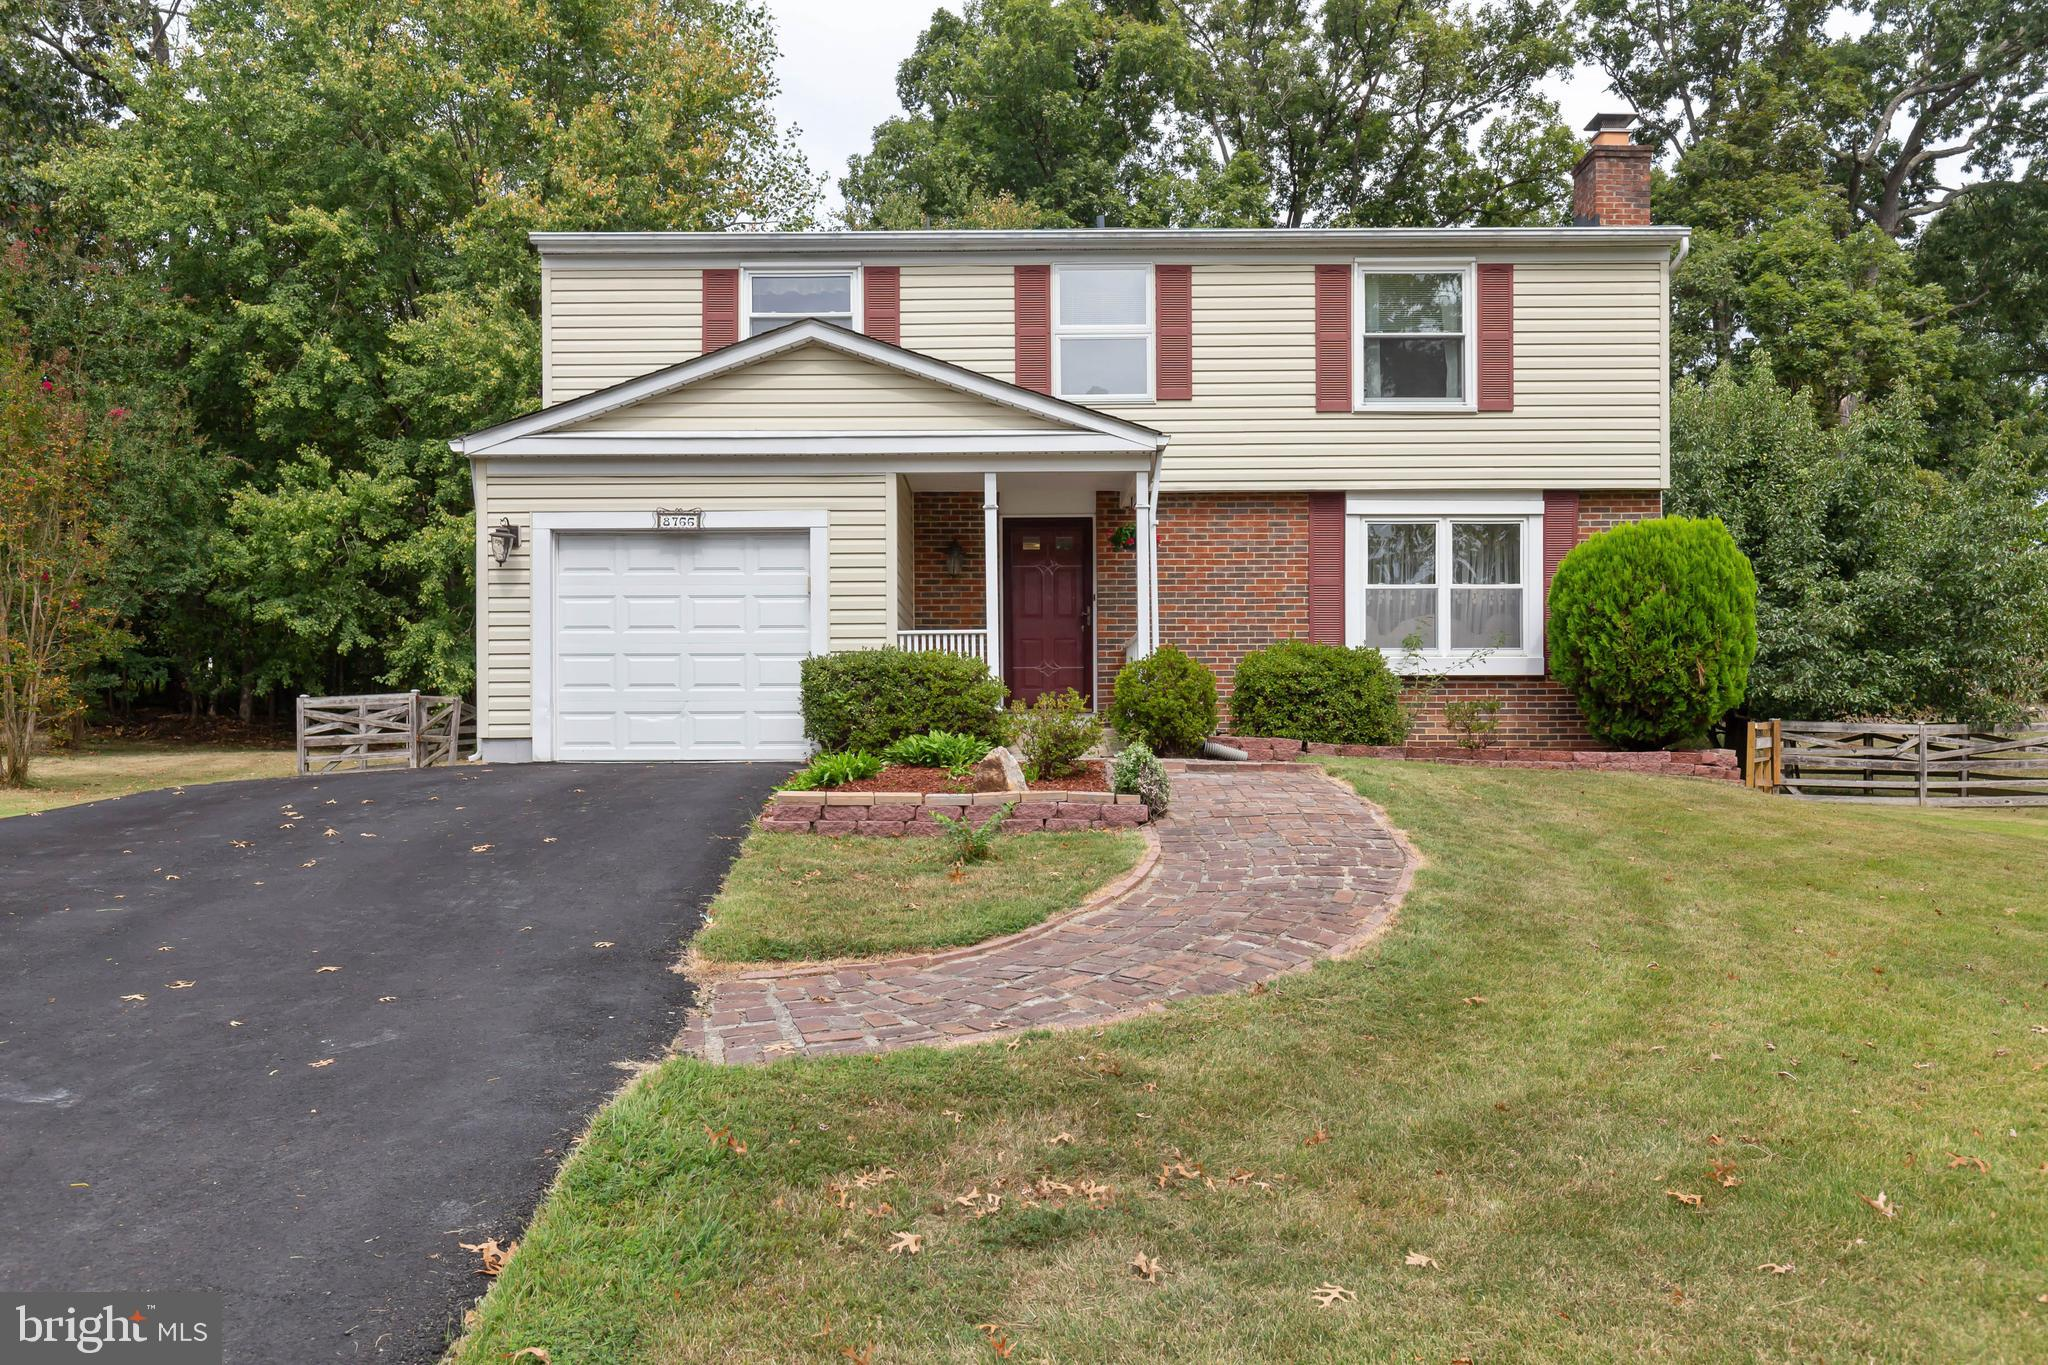 This great 3 level Colonial home features 4 Bedrooms, 3 ~ baths on a cul-de-sac lot backing to woods. This home is in move-in condition and features many improvements such as updated windows, new roof 2017, and new HVAC system 2015. The main level features a living room, dining room and family room with hardwood flooring, and an upgraded kitchen with stainless steel appliances, granite countertops, and a kitchen island. The oversized master bedroom features a walk-in closet, a second closet and a master bath suite. The basement has a 20~ x 14~ Rec. Room, a full bath and an office. Newington Forest offers a convenient commute and a serene place to come home to and relax. More than 50% of Newington Forest land is set aside for common areas. Amenities include a swimming pool, community center, tennis courts, tot lots, basketball courts, ballfield, approximately 2.5 miles of trails connecting to the South Run Stream Valley.